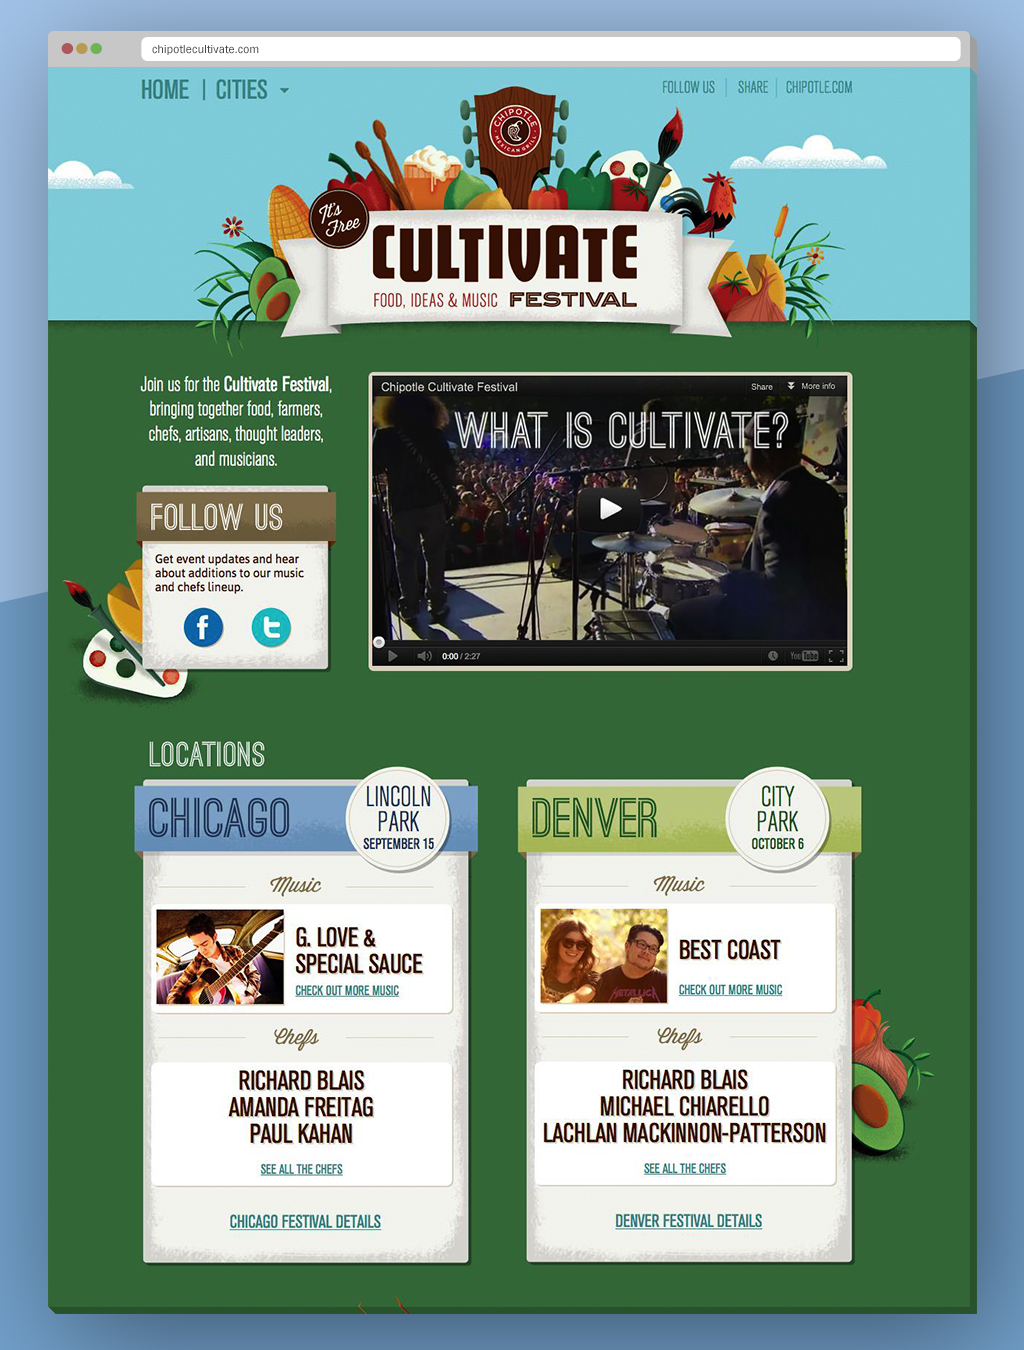 Chipotle_Cultivate_website1